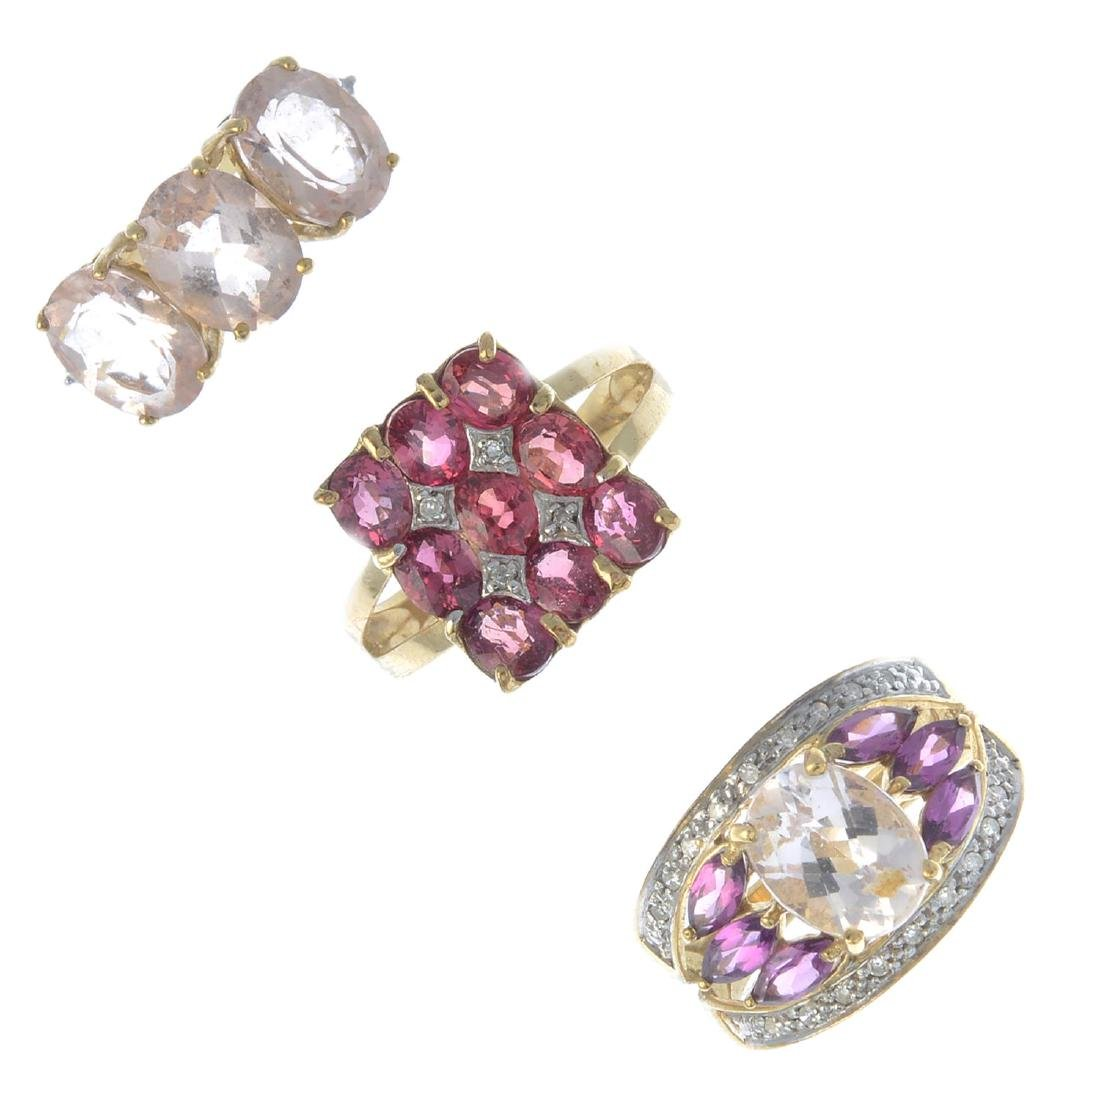 Three 9ct gold gem-set dress rings. To include an